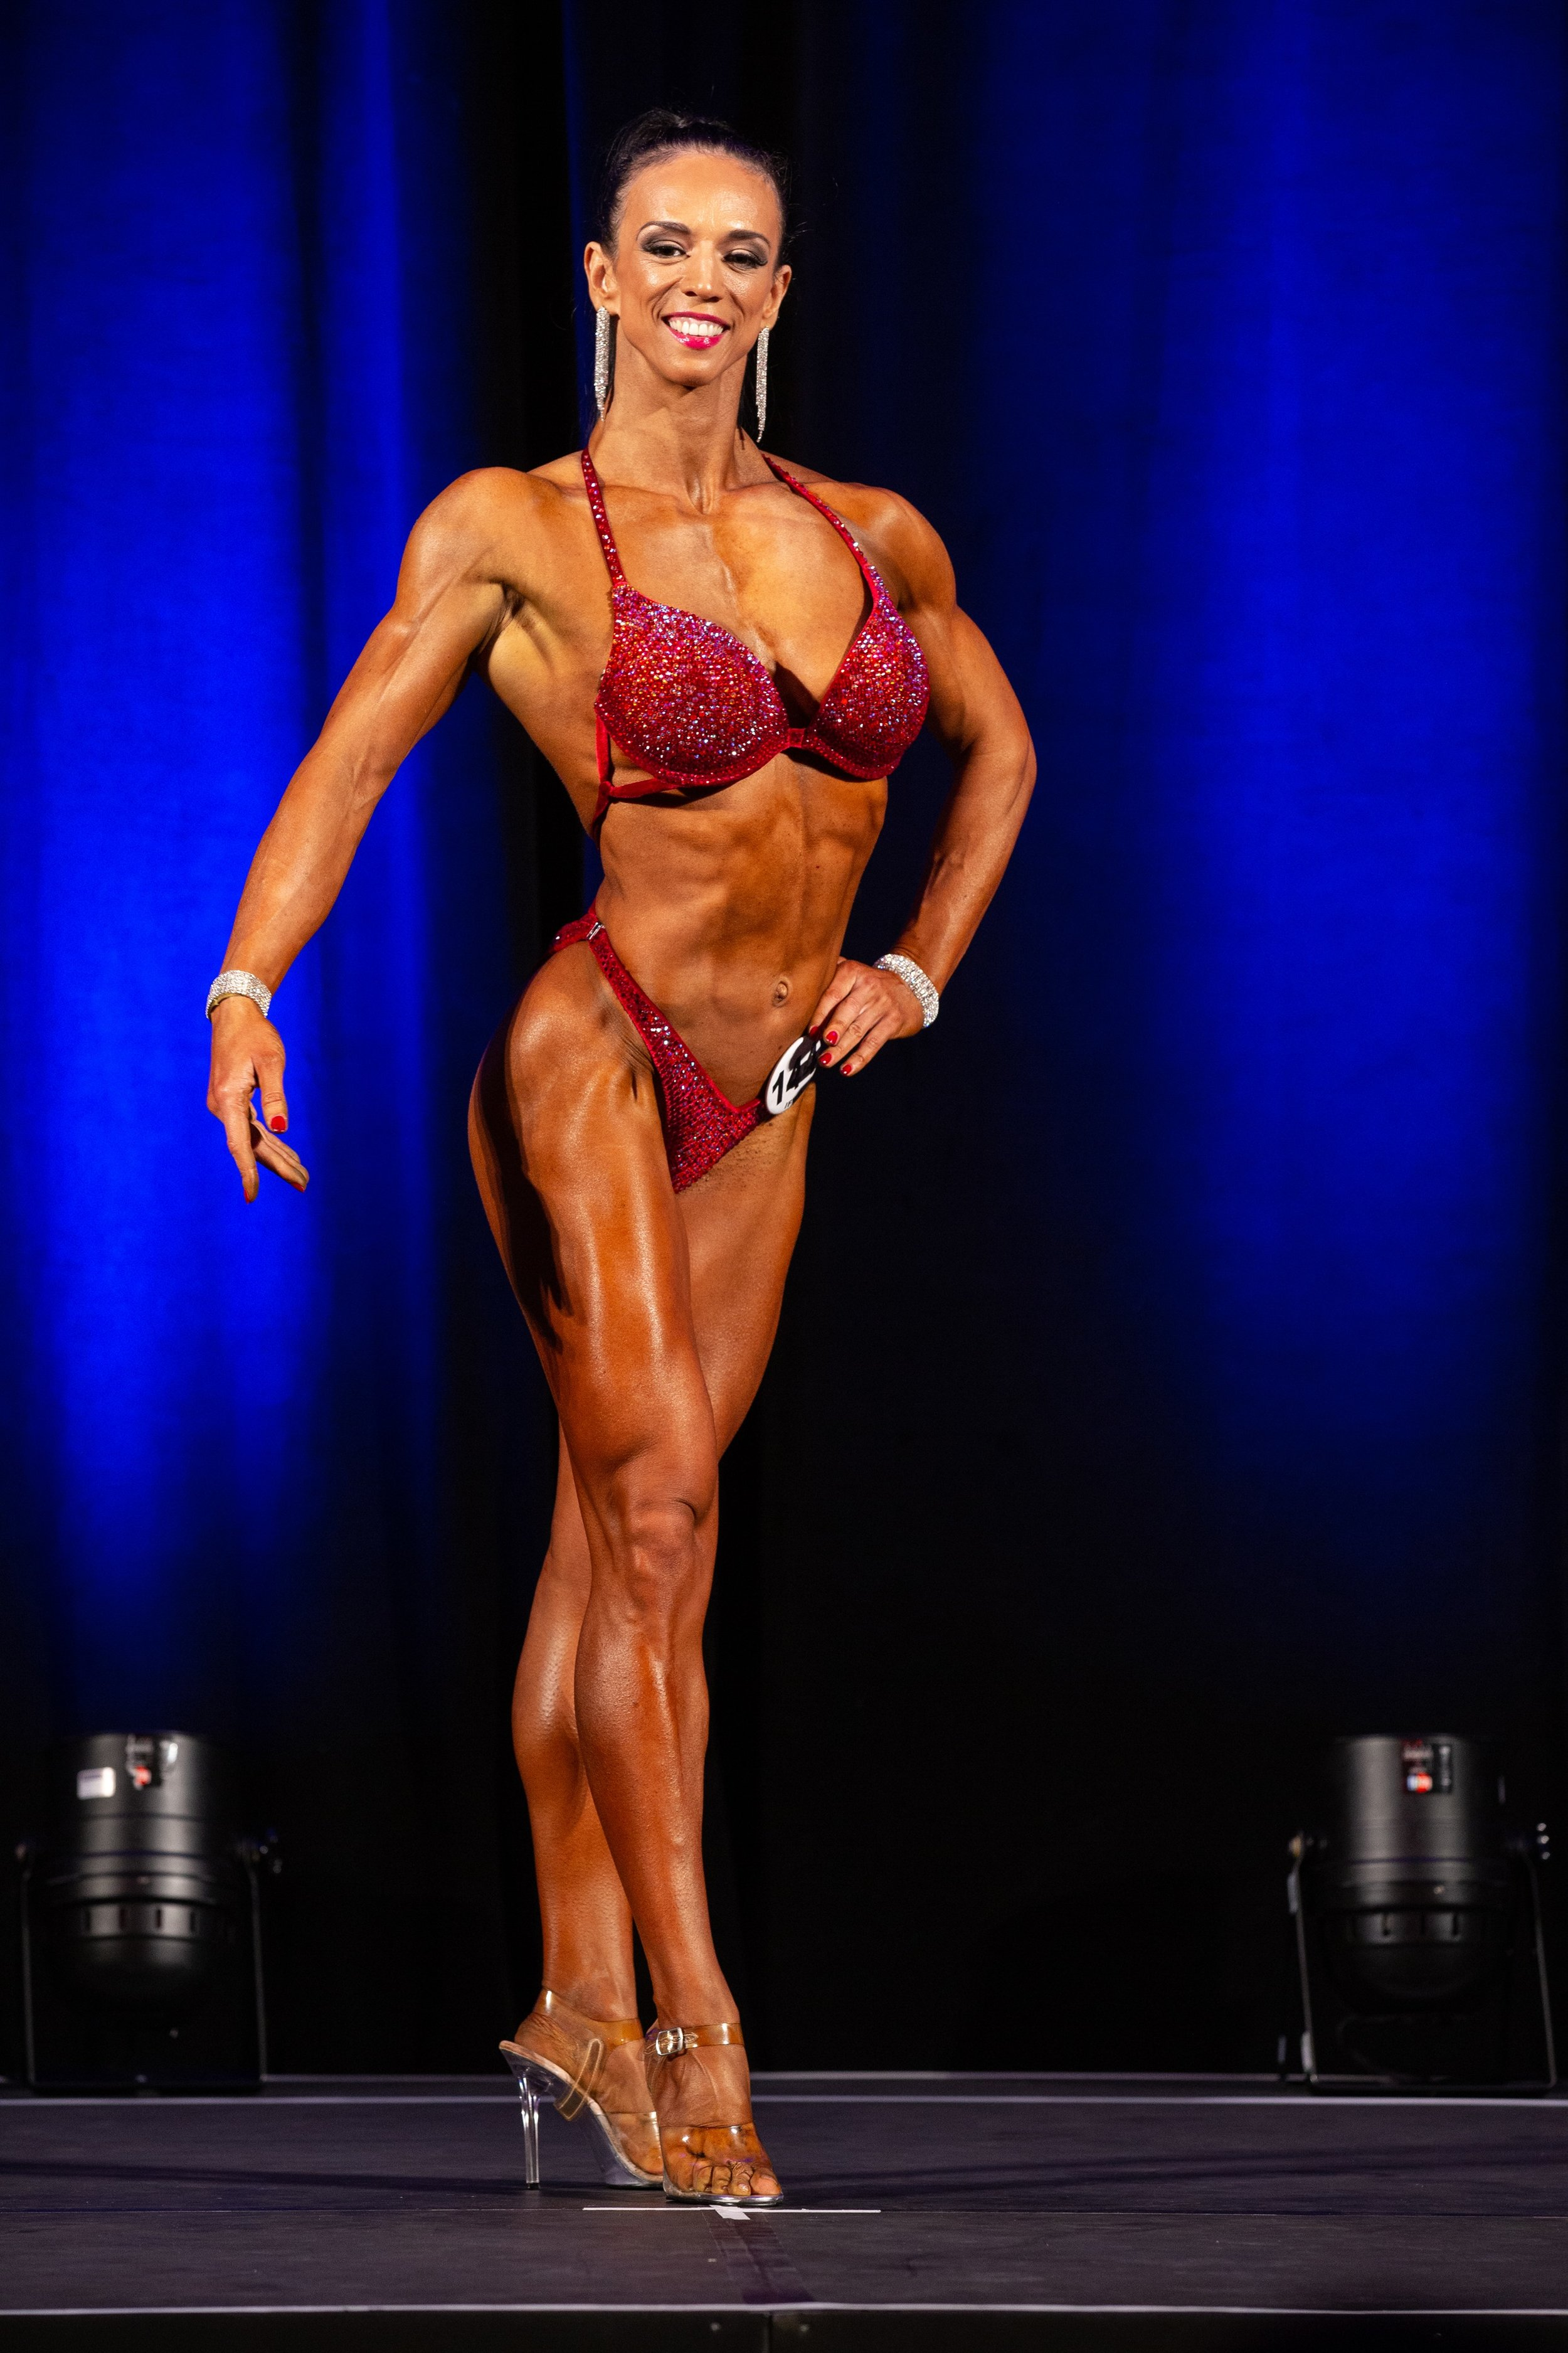 Olga Upelniece won another two first place trophies,.